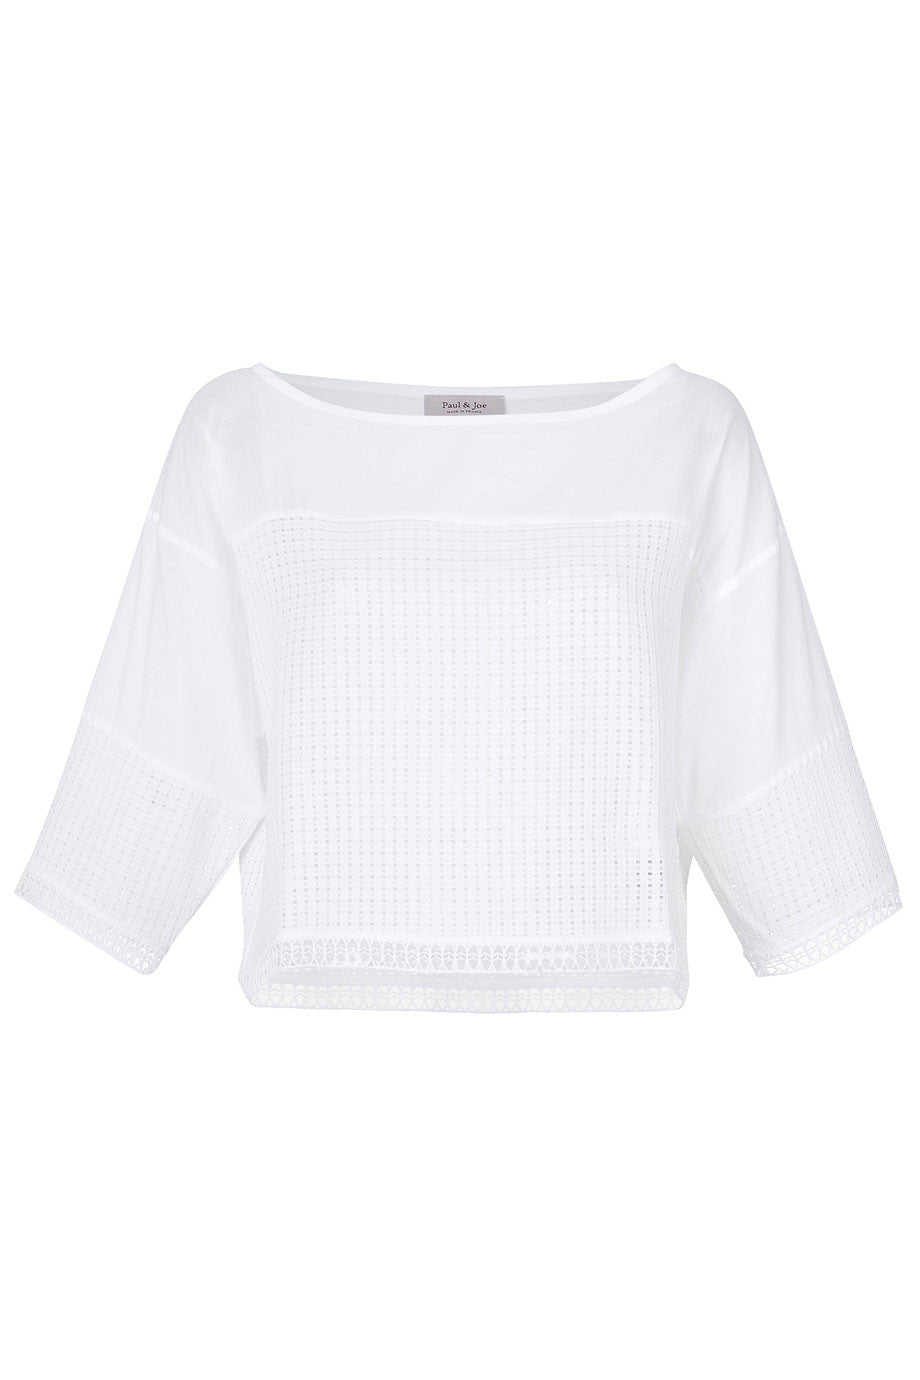 Paul & Joe Cropped White Cotton Mesh 3/4 Sleeve Top / Sz 1 - Style Therapy  - 1